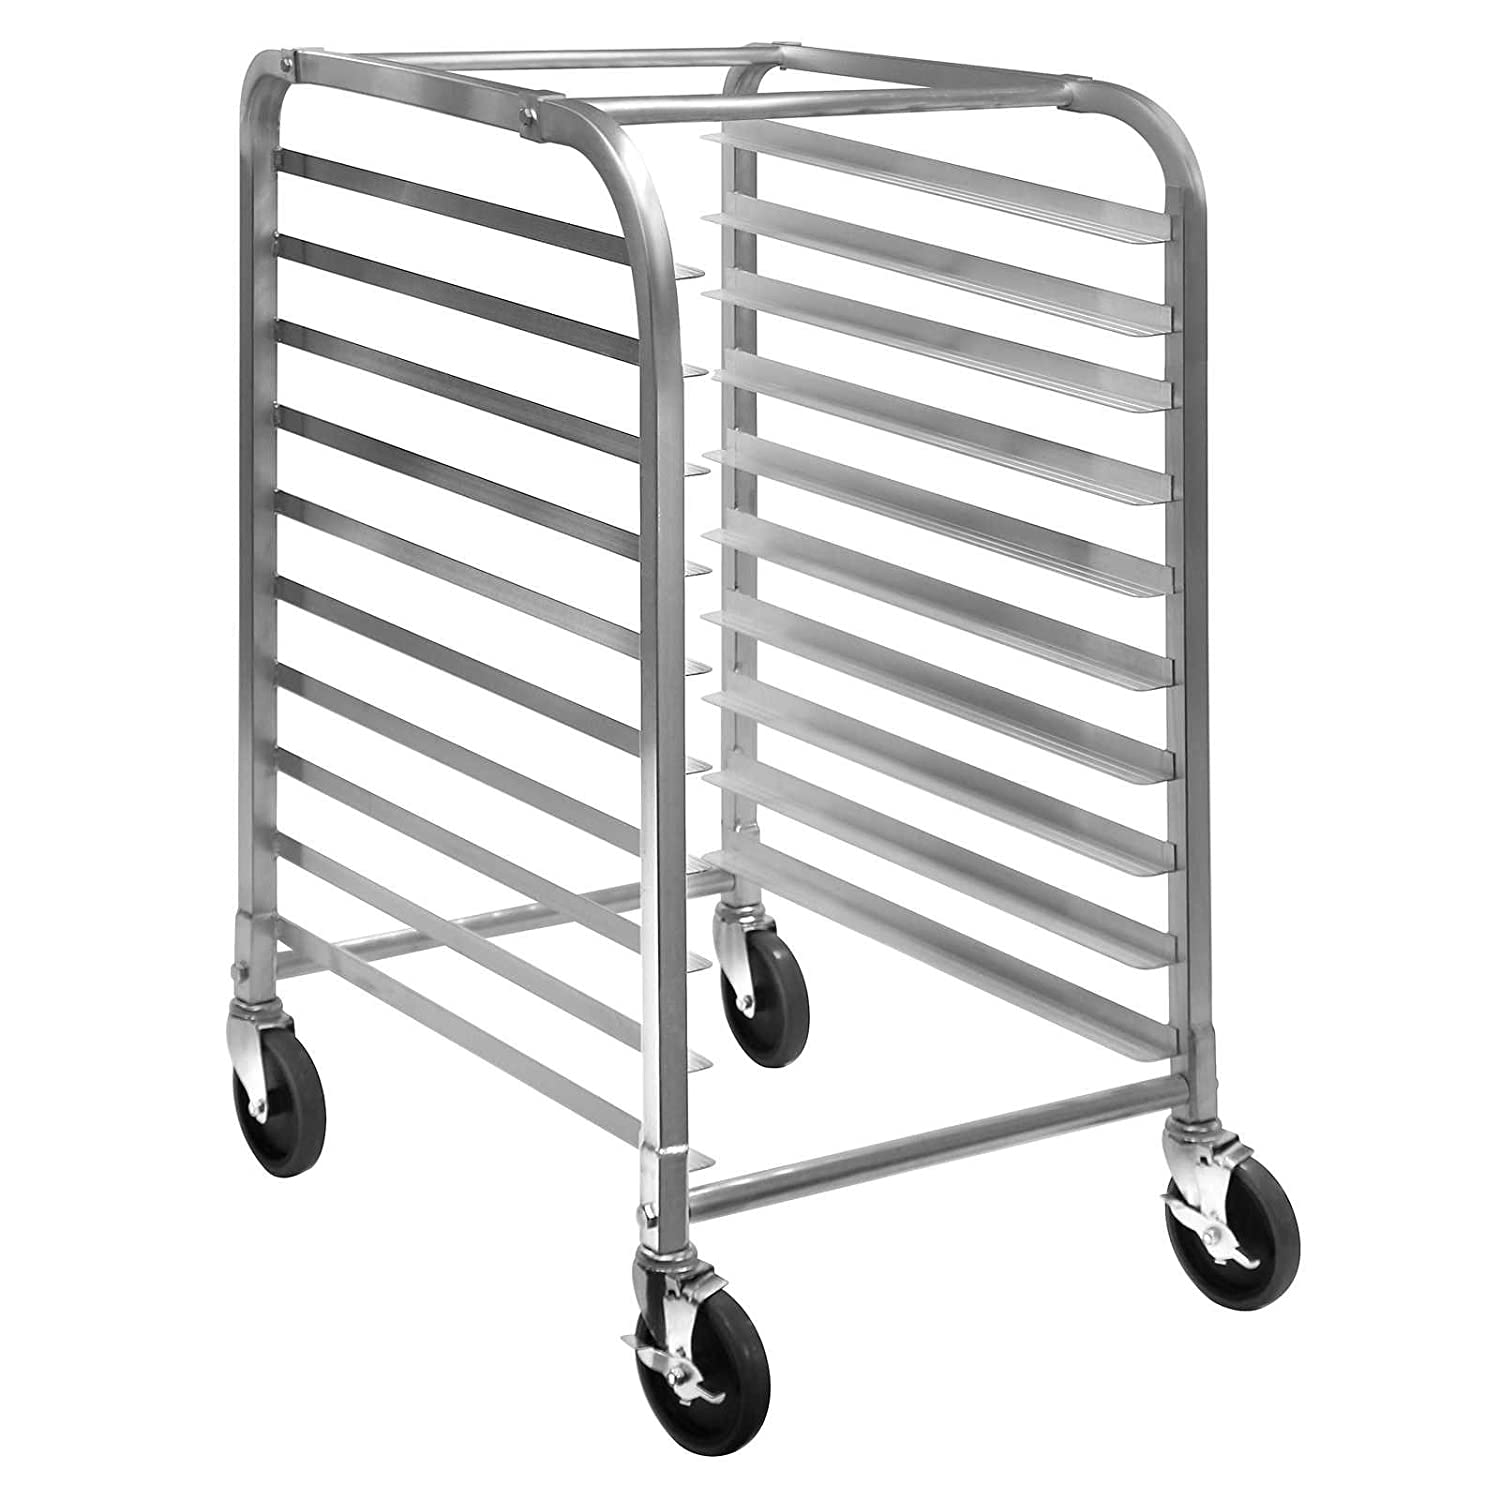 Image of Bakery Racks GRIDMANN Commercial Bun Pan Bakery Rack - 10 Sheet